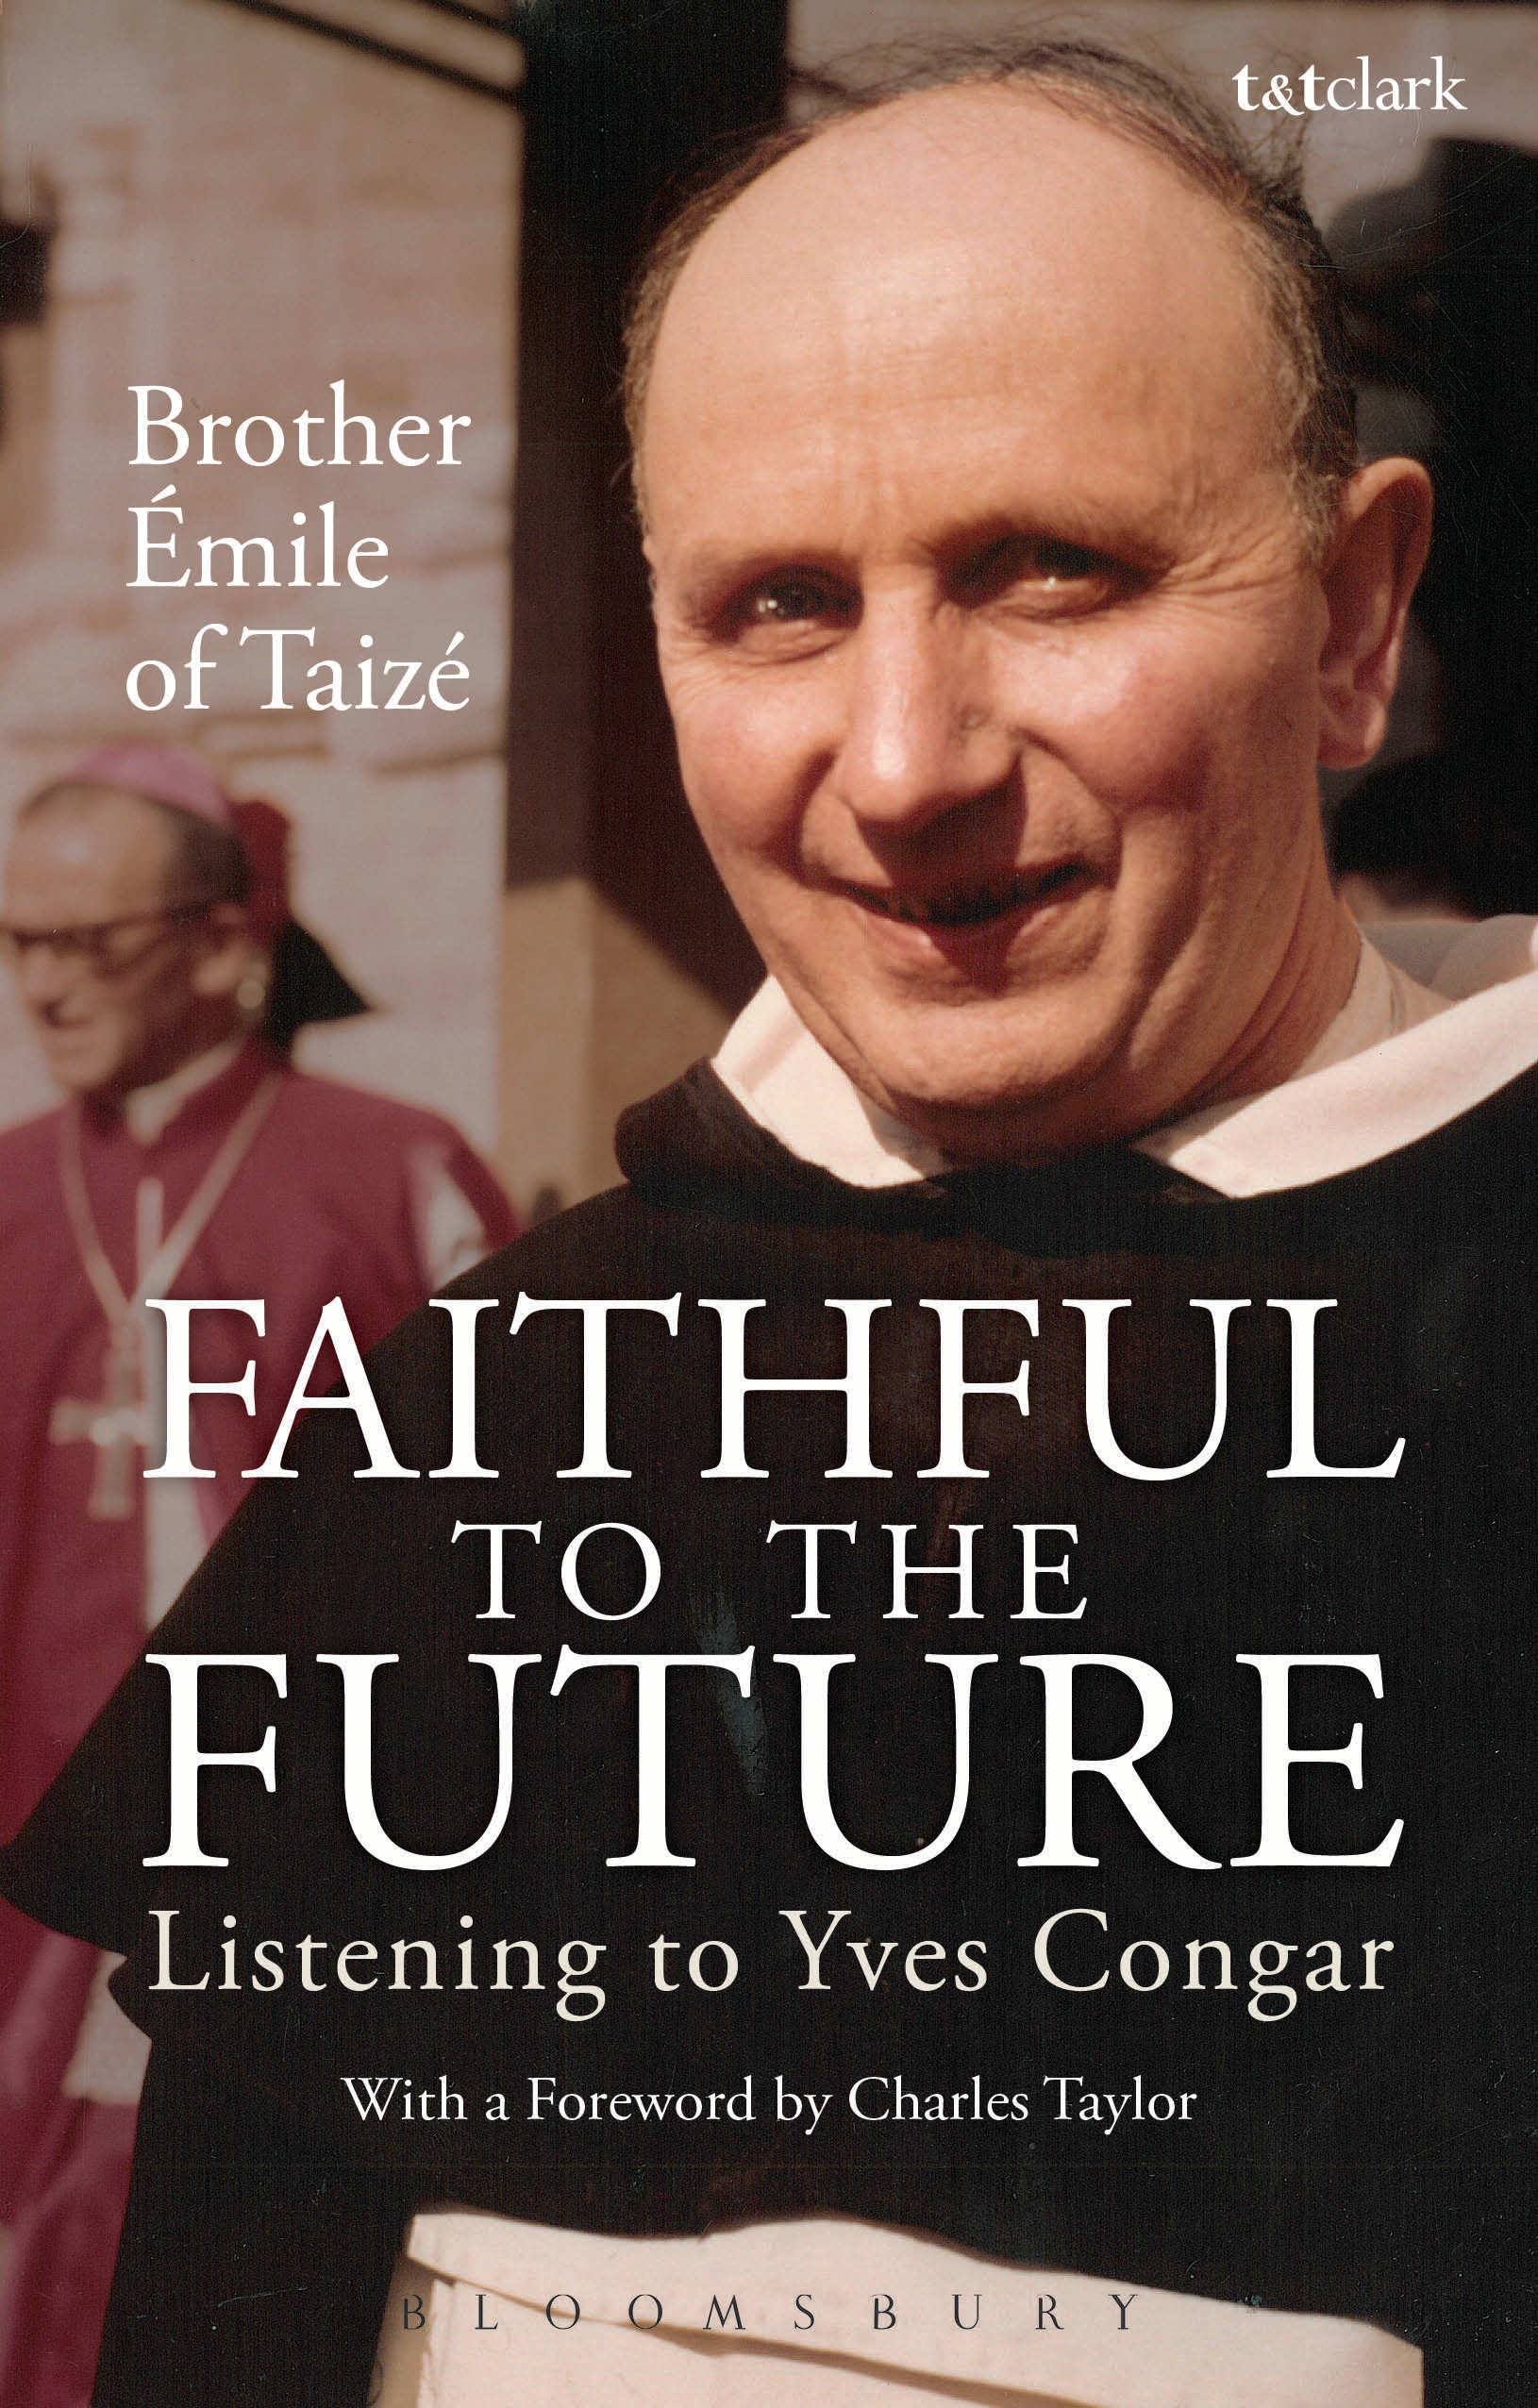 Faithful to the Future Listening to Yves Congar